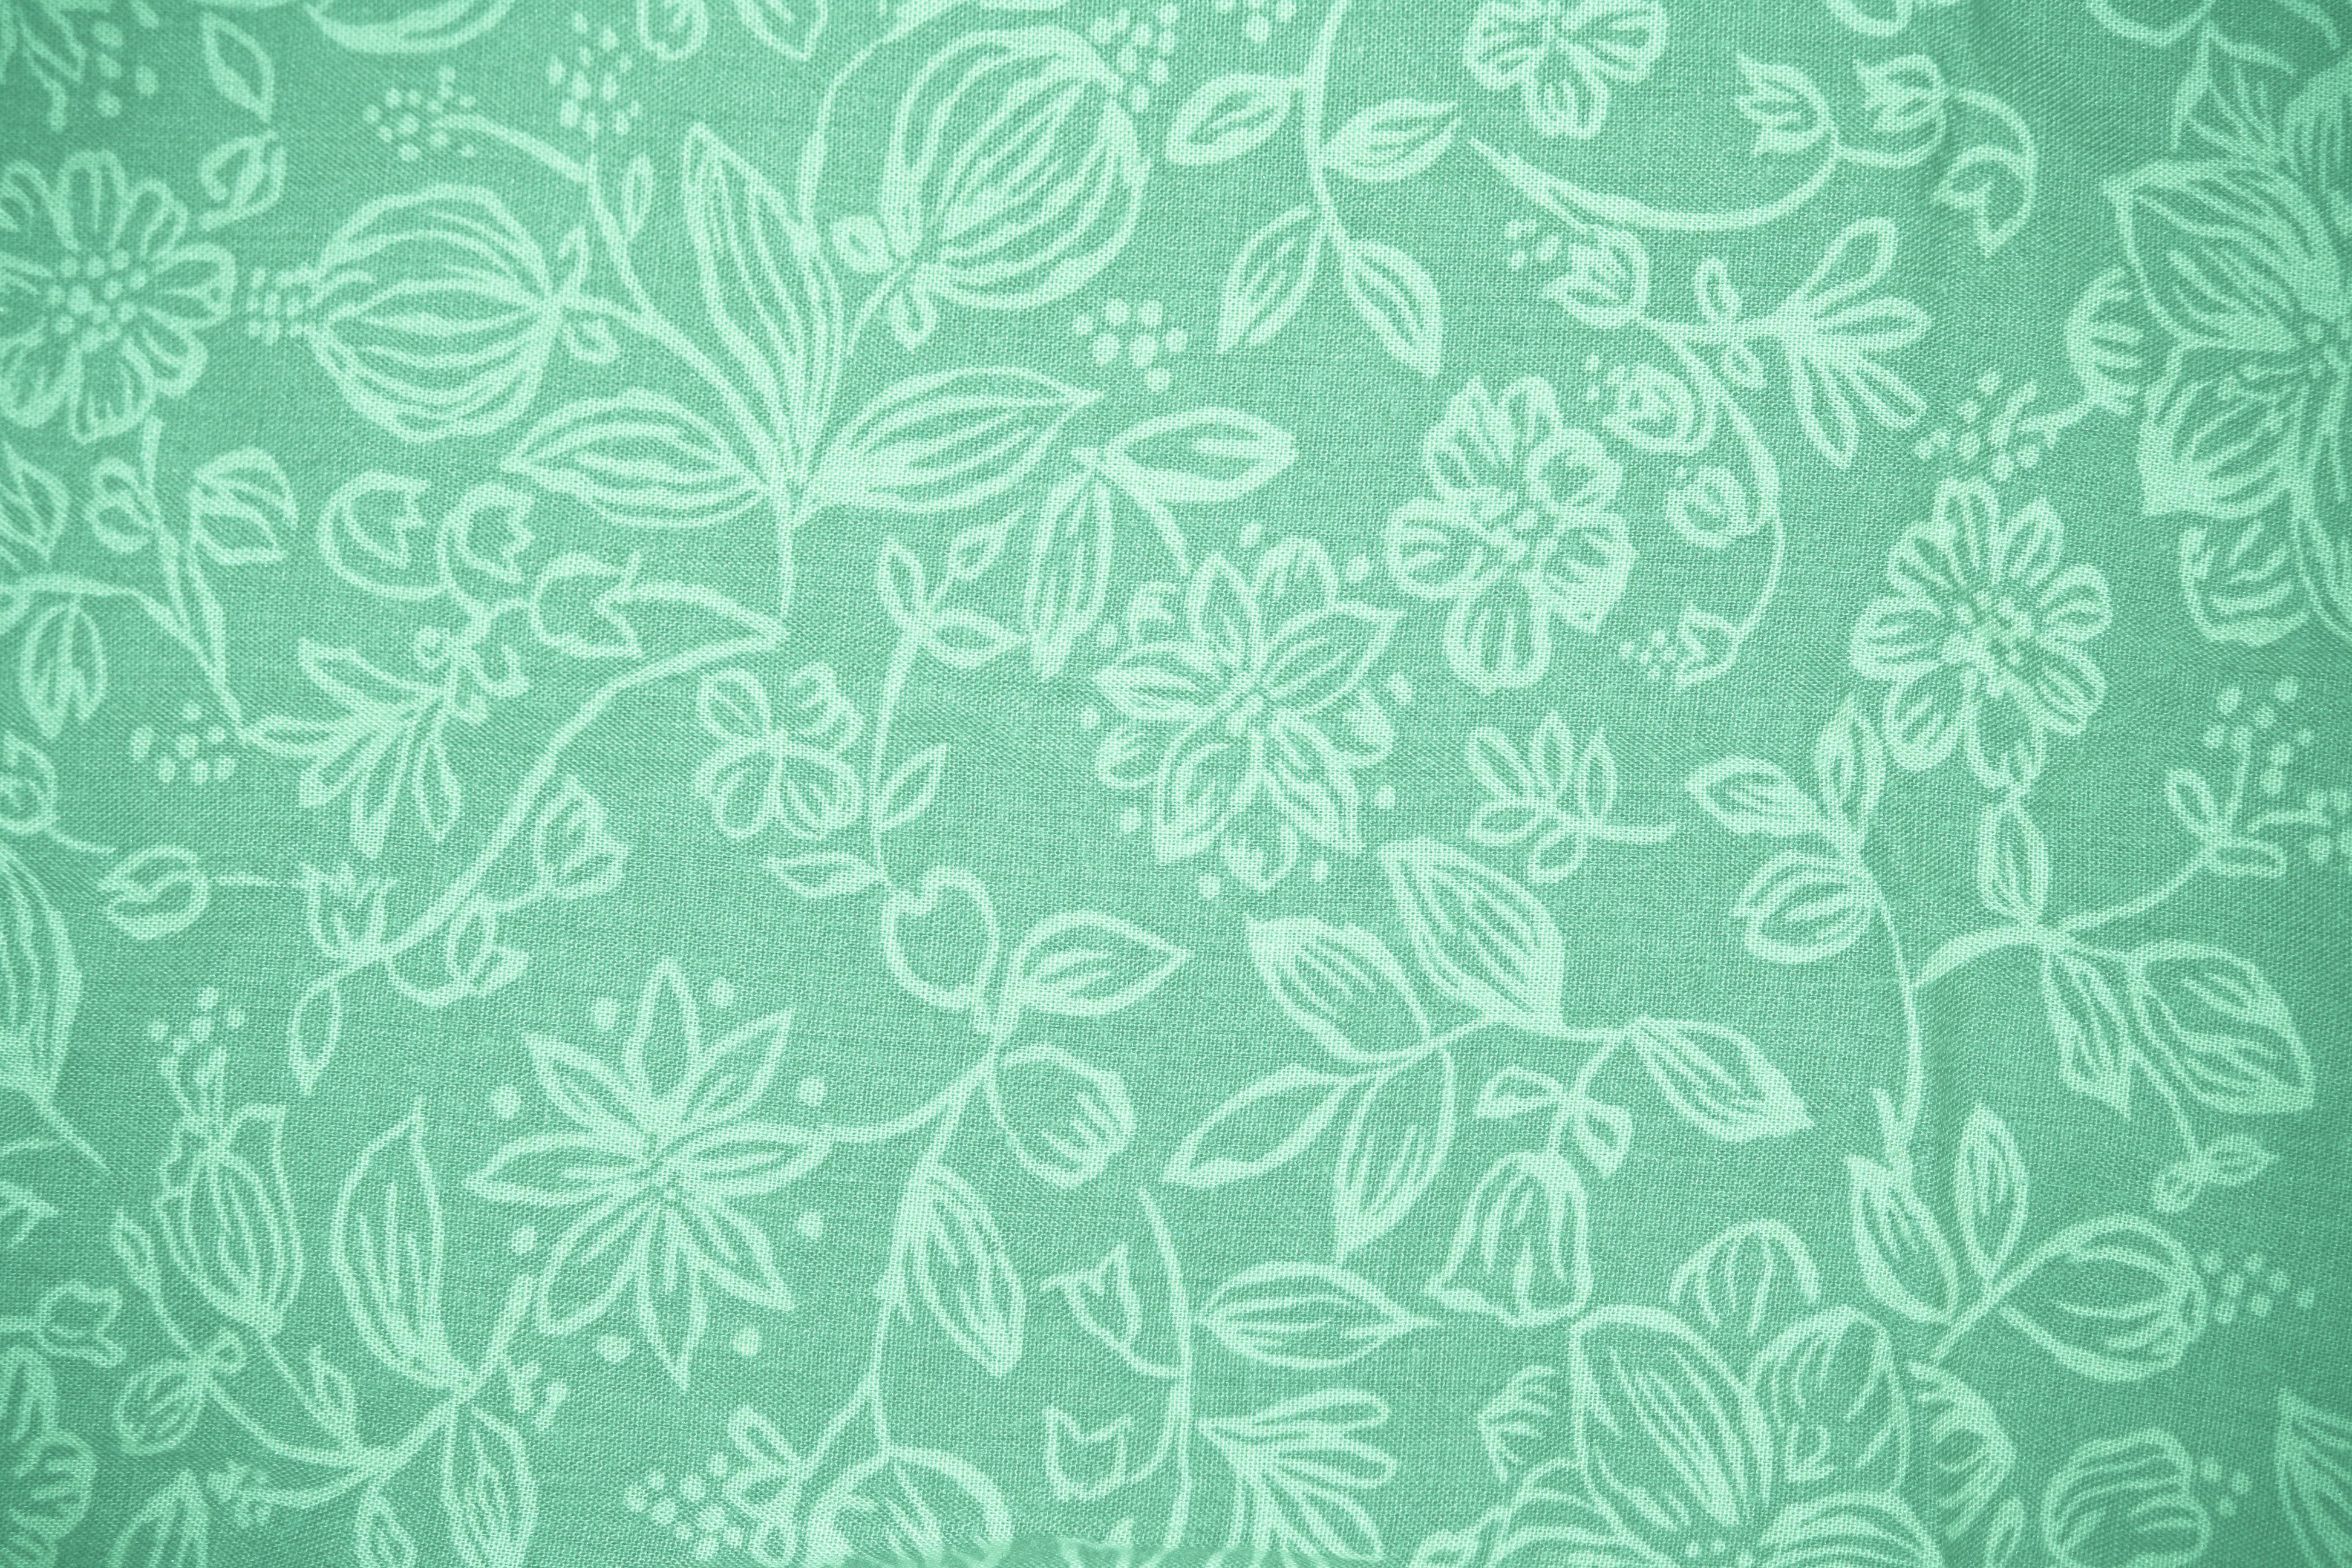 3888x2592 Mint Green Floral Wallpaper High Quality for HD Wallpaper Desktop ...